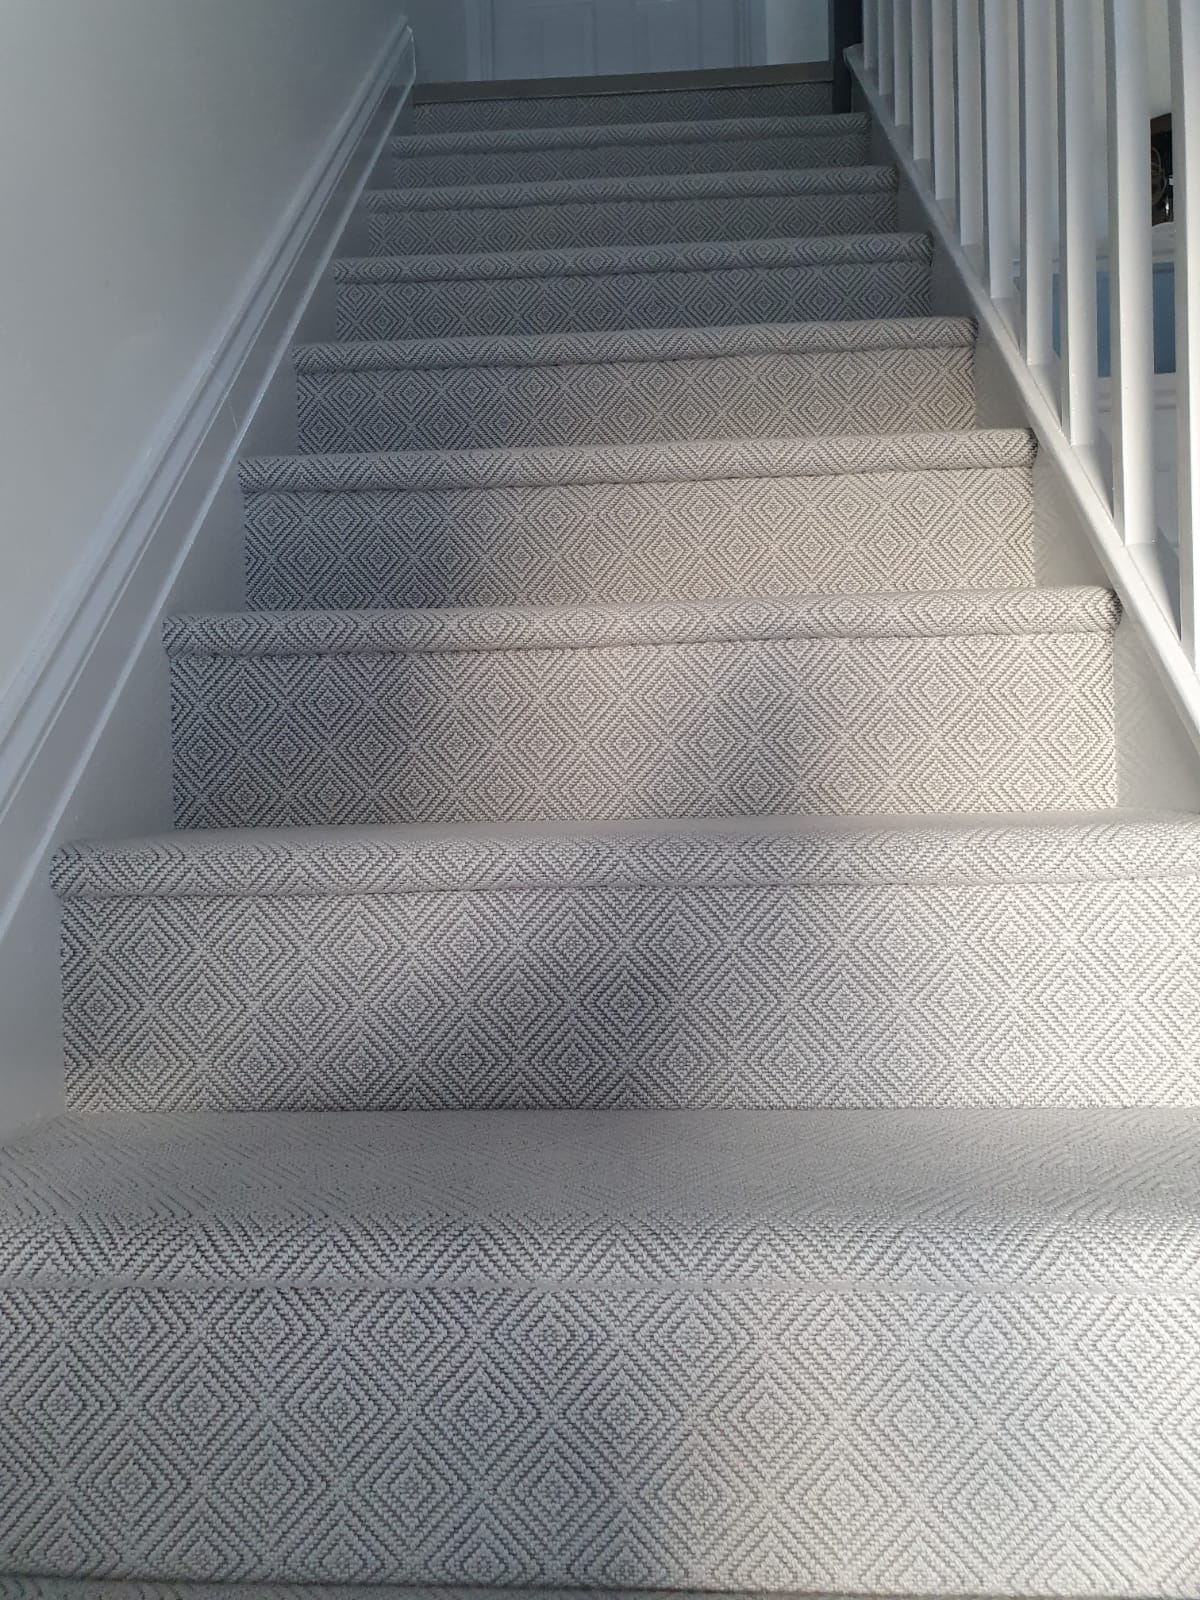 Fibre Carpets Wool Paragon In Shepherds Bush 1